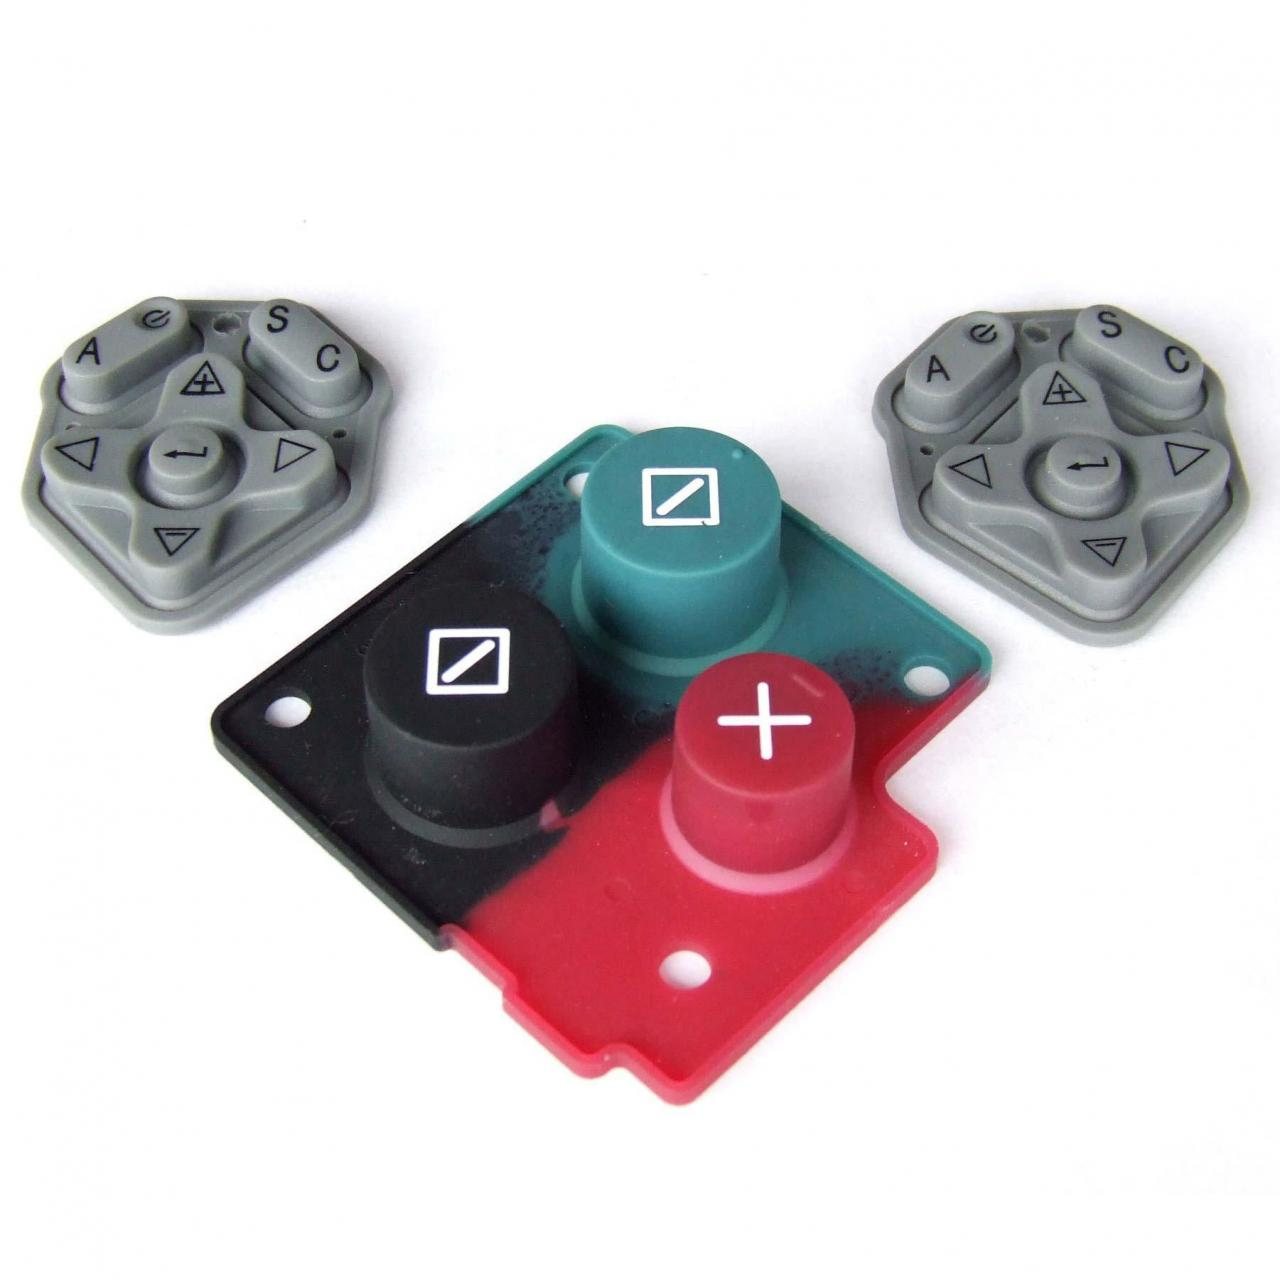 Category of die casting No.: A023